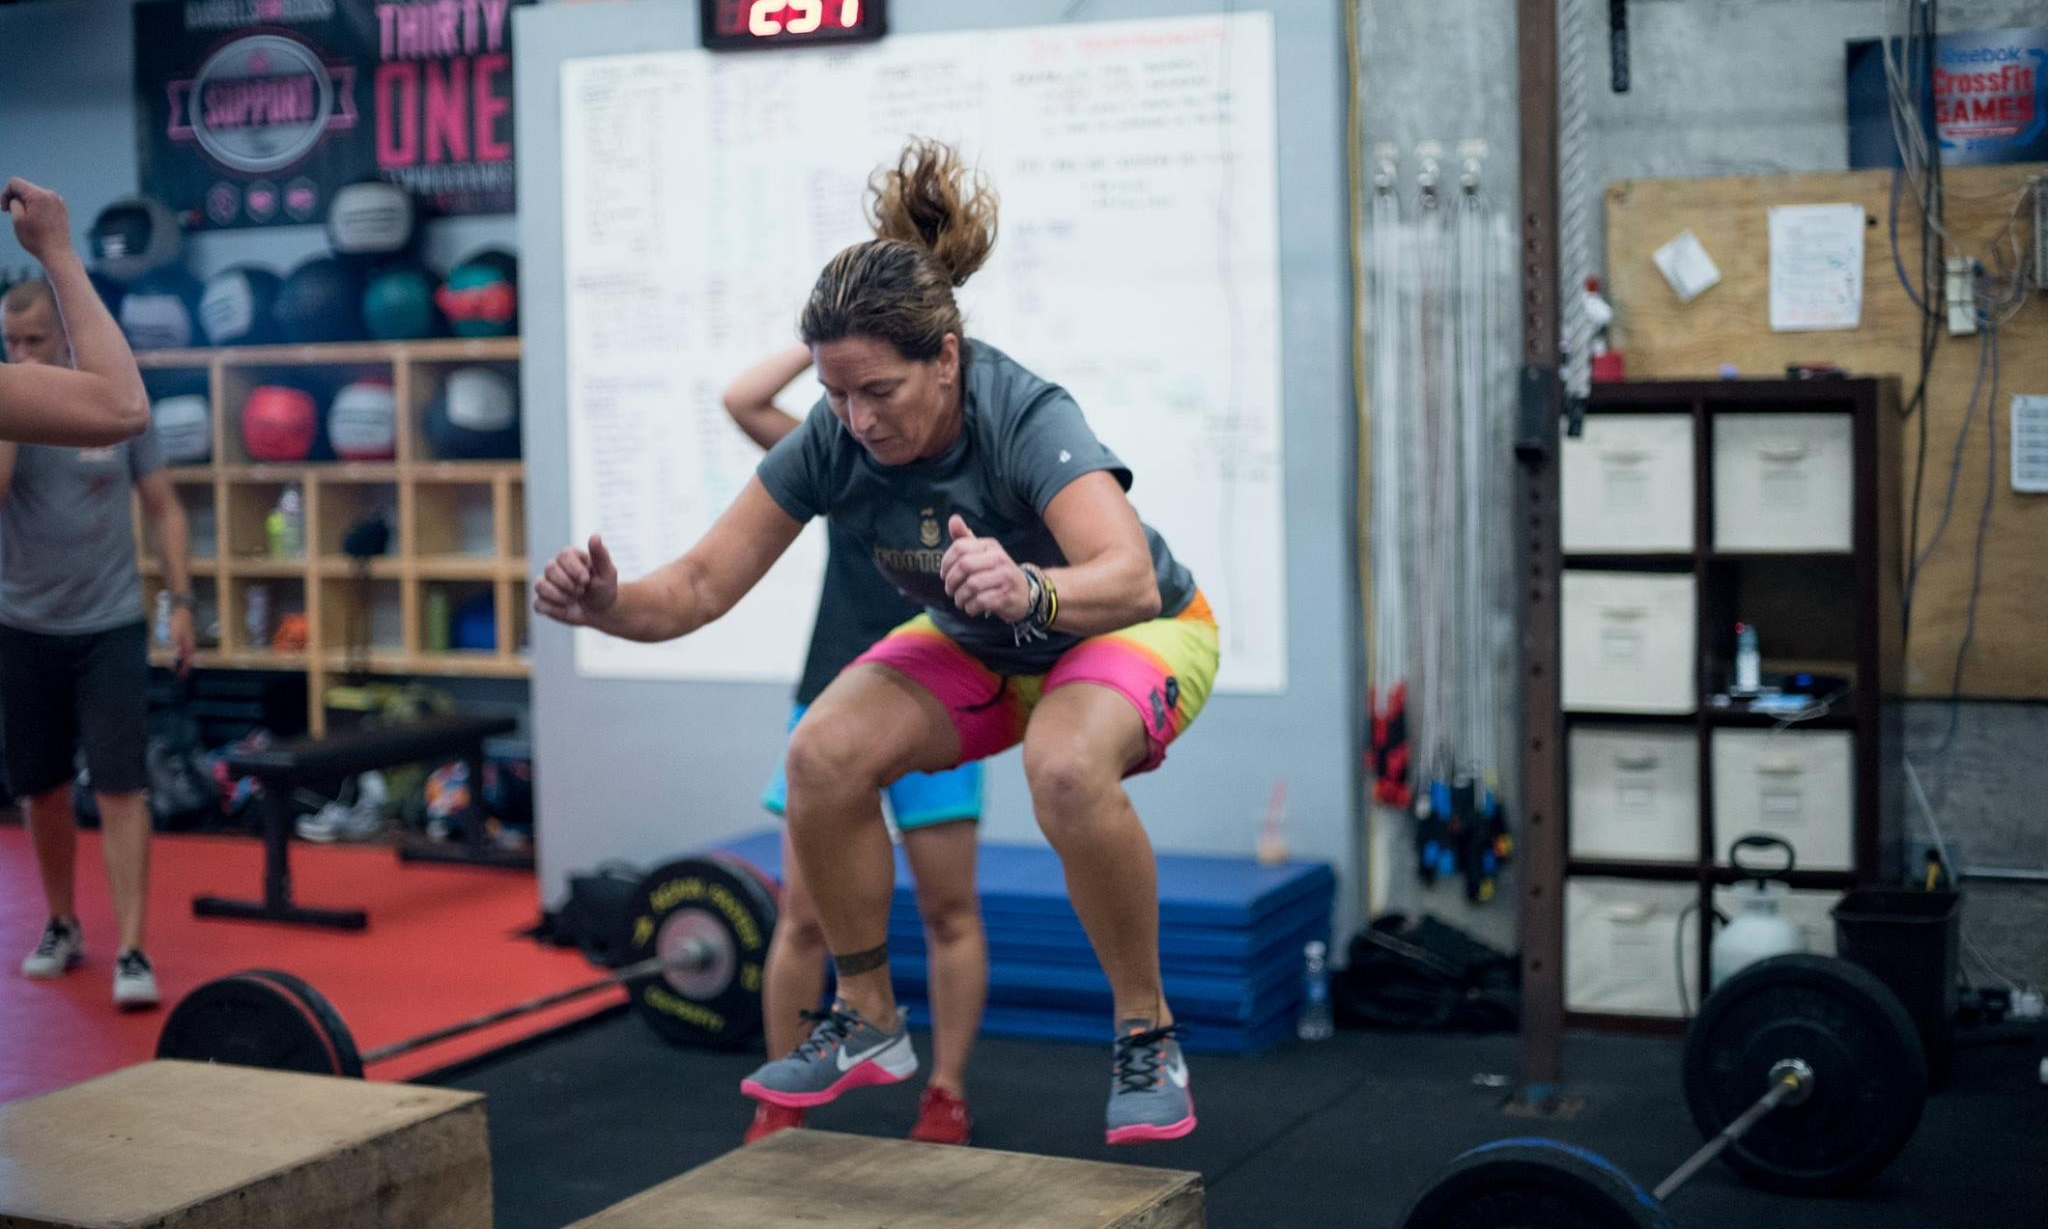 Carrie Rey   Carrie graduated from Cal State Long Beach and is a science teacher at Bishop Montgomery High school. She was a volleyball coach for 25 years and has had her CrossFit L1 Certification for three years. She has also been a strength and conditioning coach for three years.